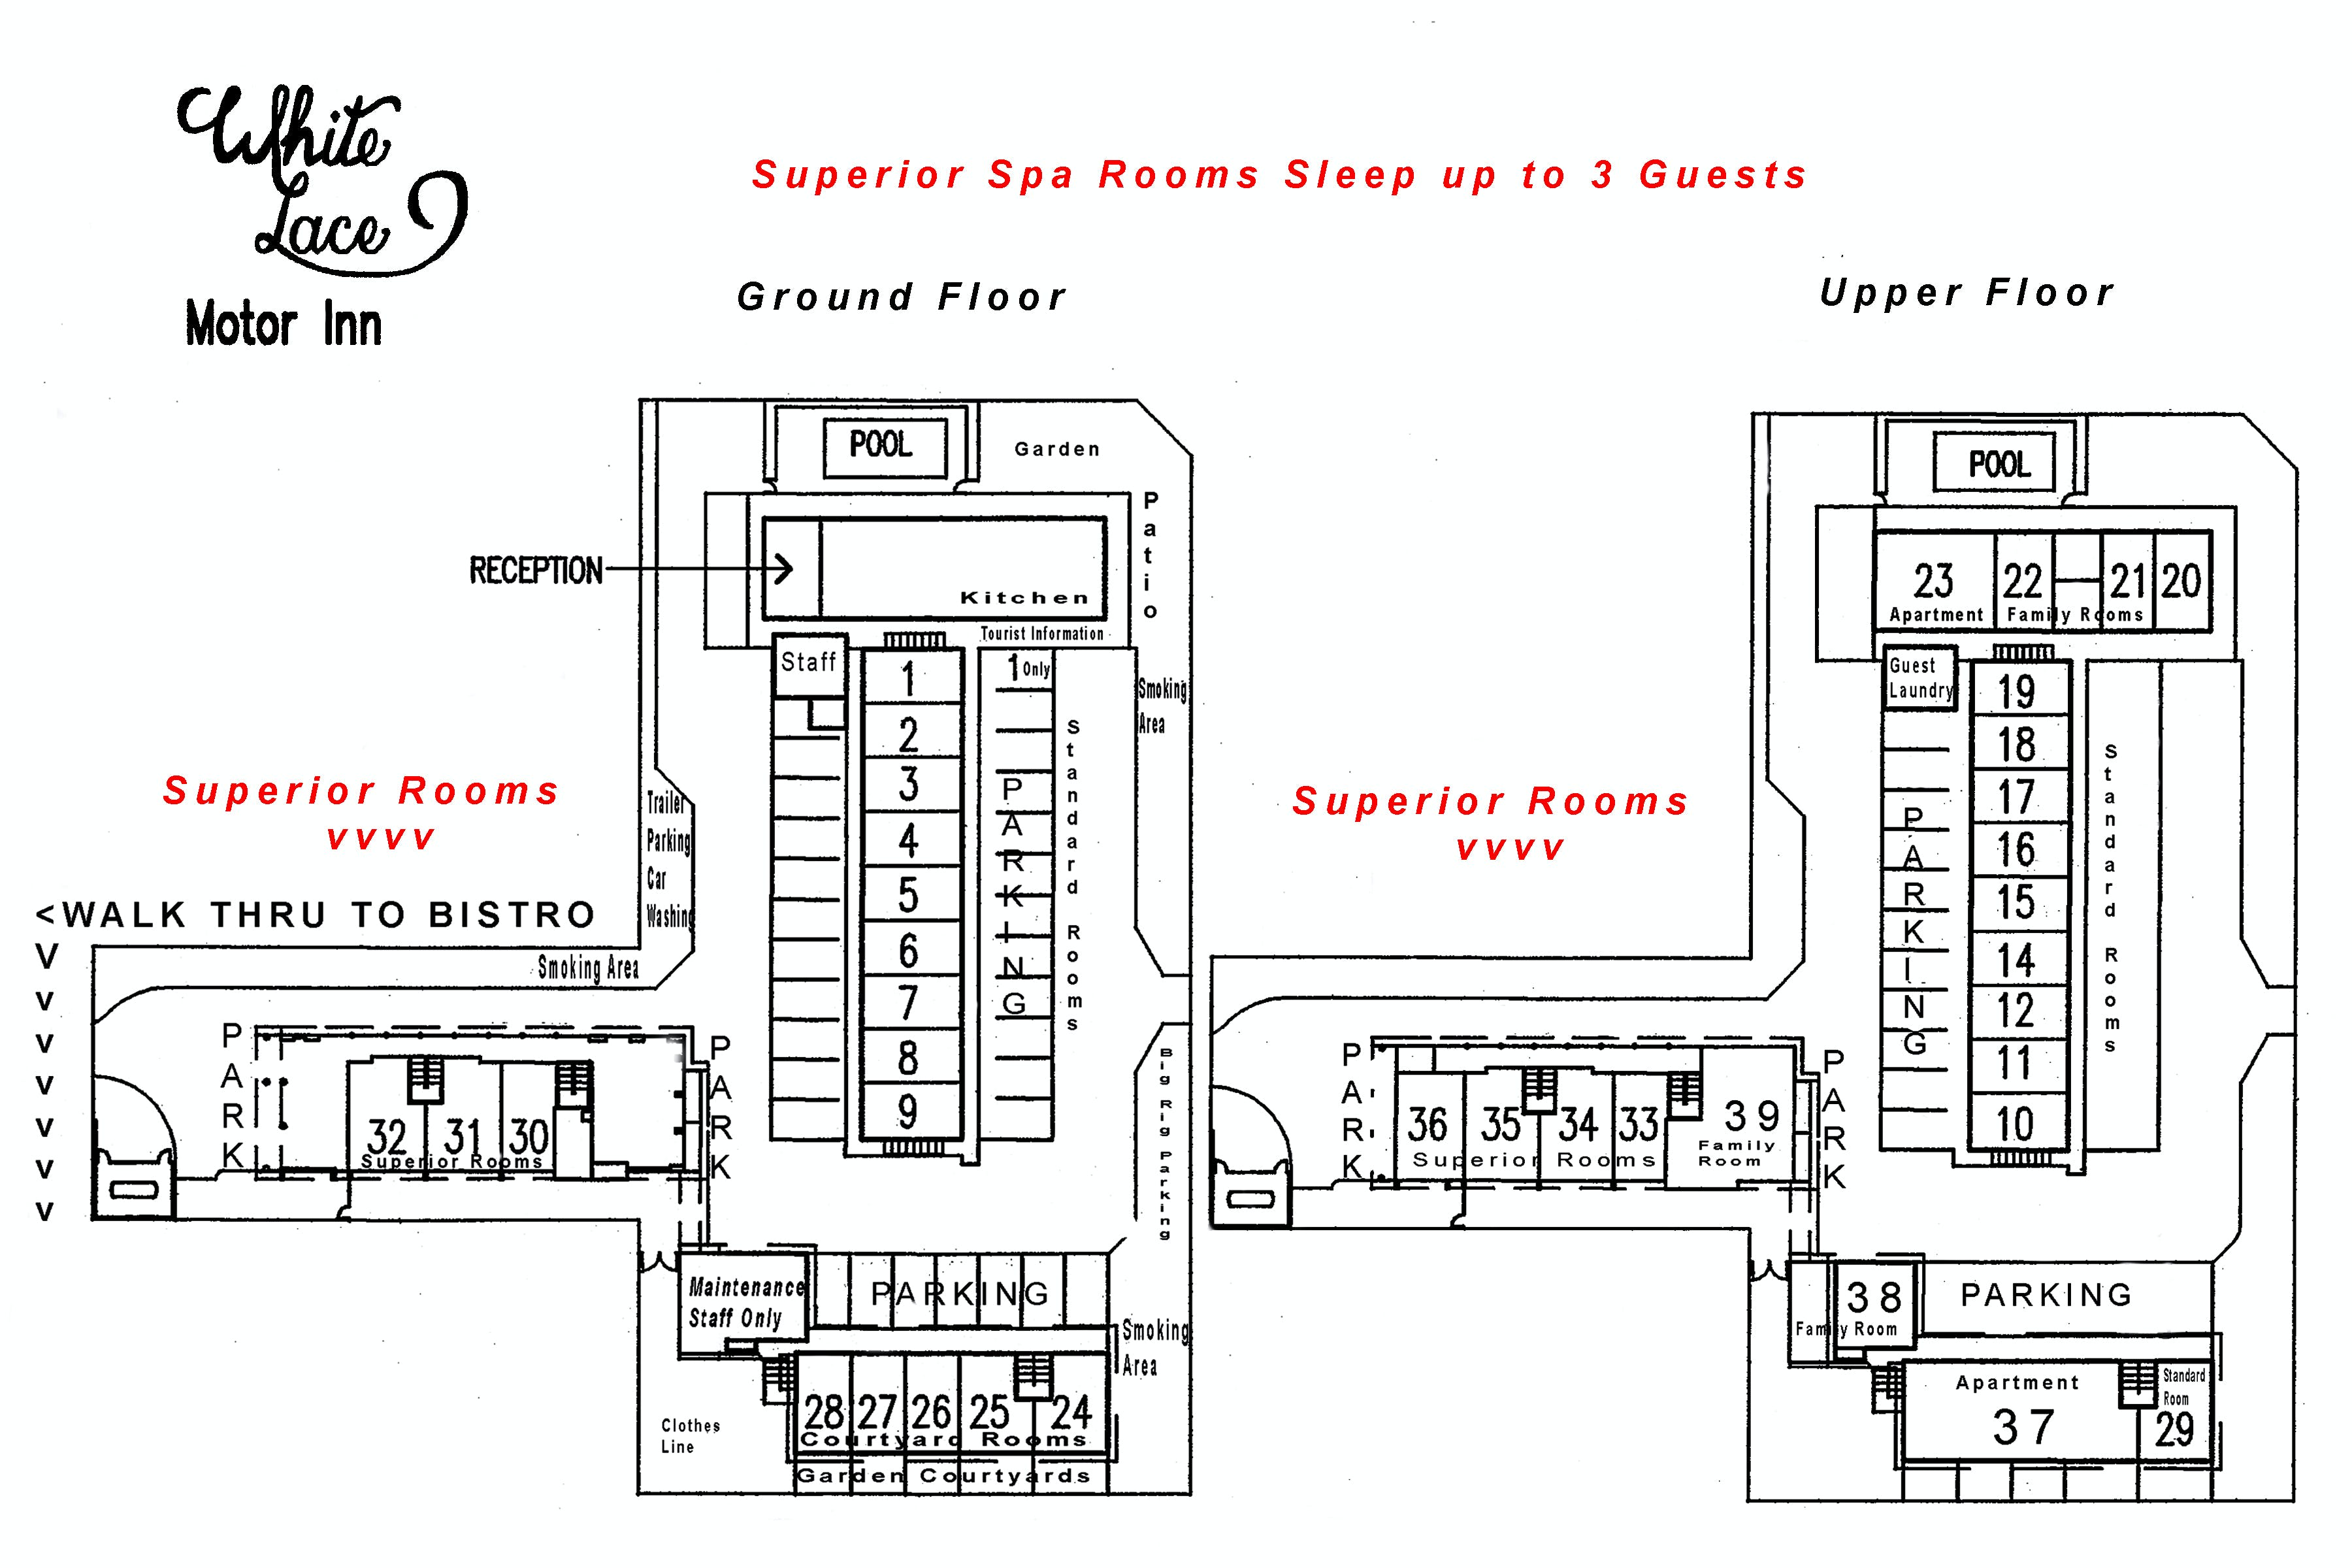 Superior Spa site plan White Lace Motor Inn Mackay, Spa room Mackay